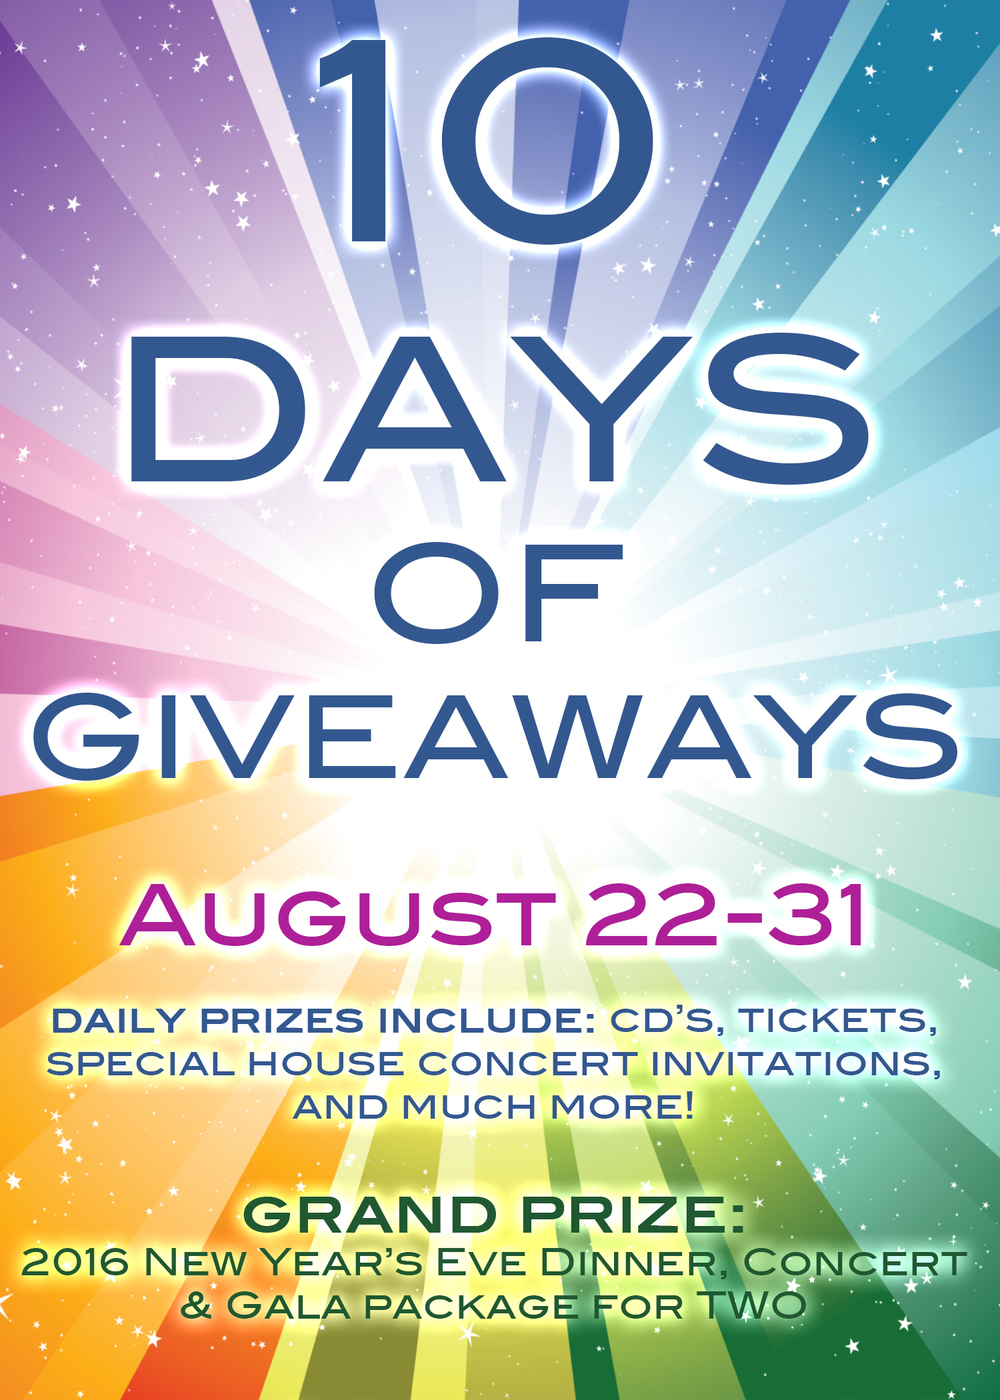 10 days giveaways 2016.jpg